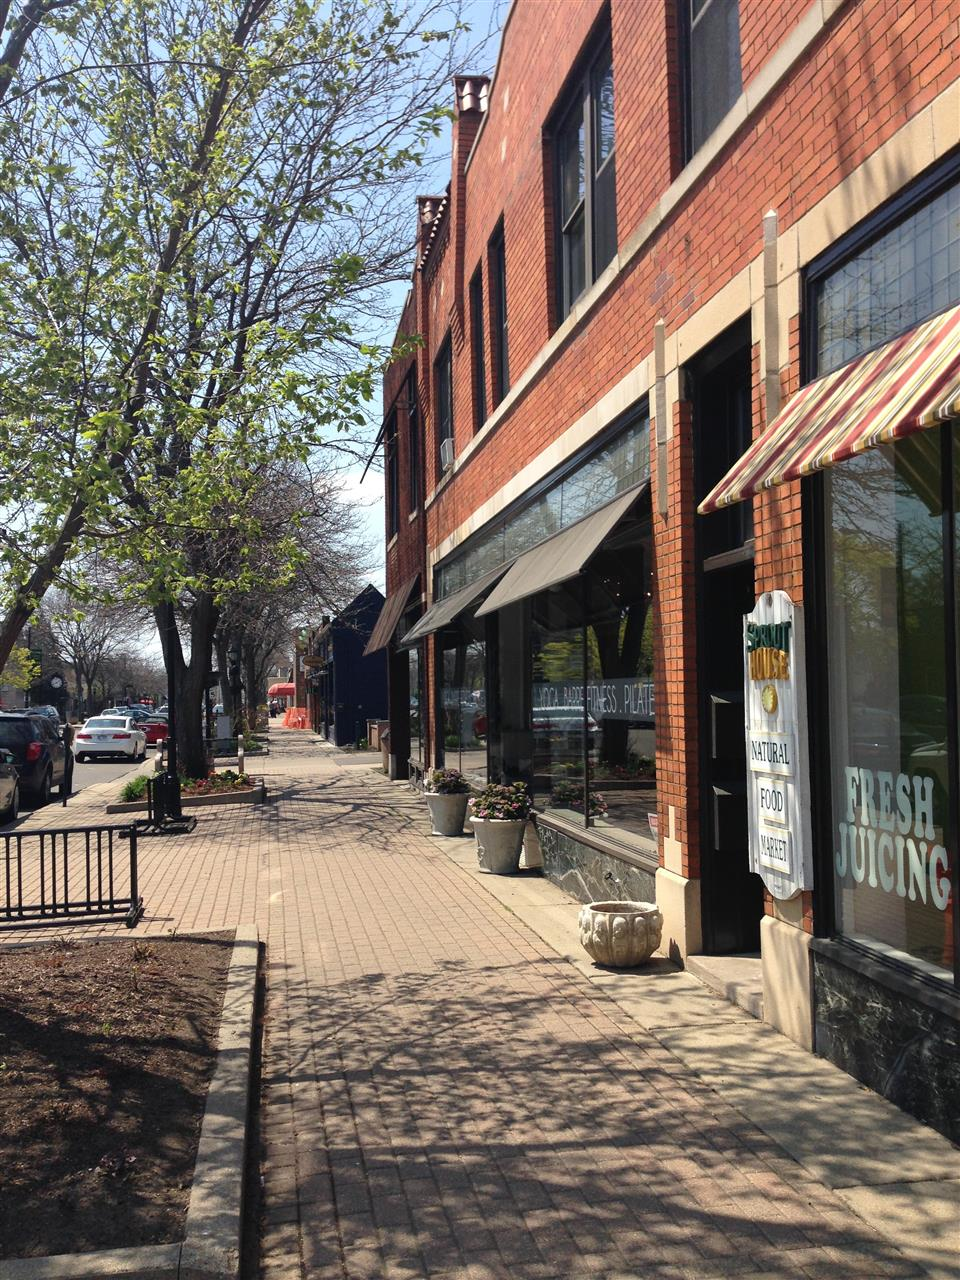 Sidwalk view of storefronts ~ Grosse Pointe Park, Michigan #LeadingRElocal #GrossePointe #Michigan